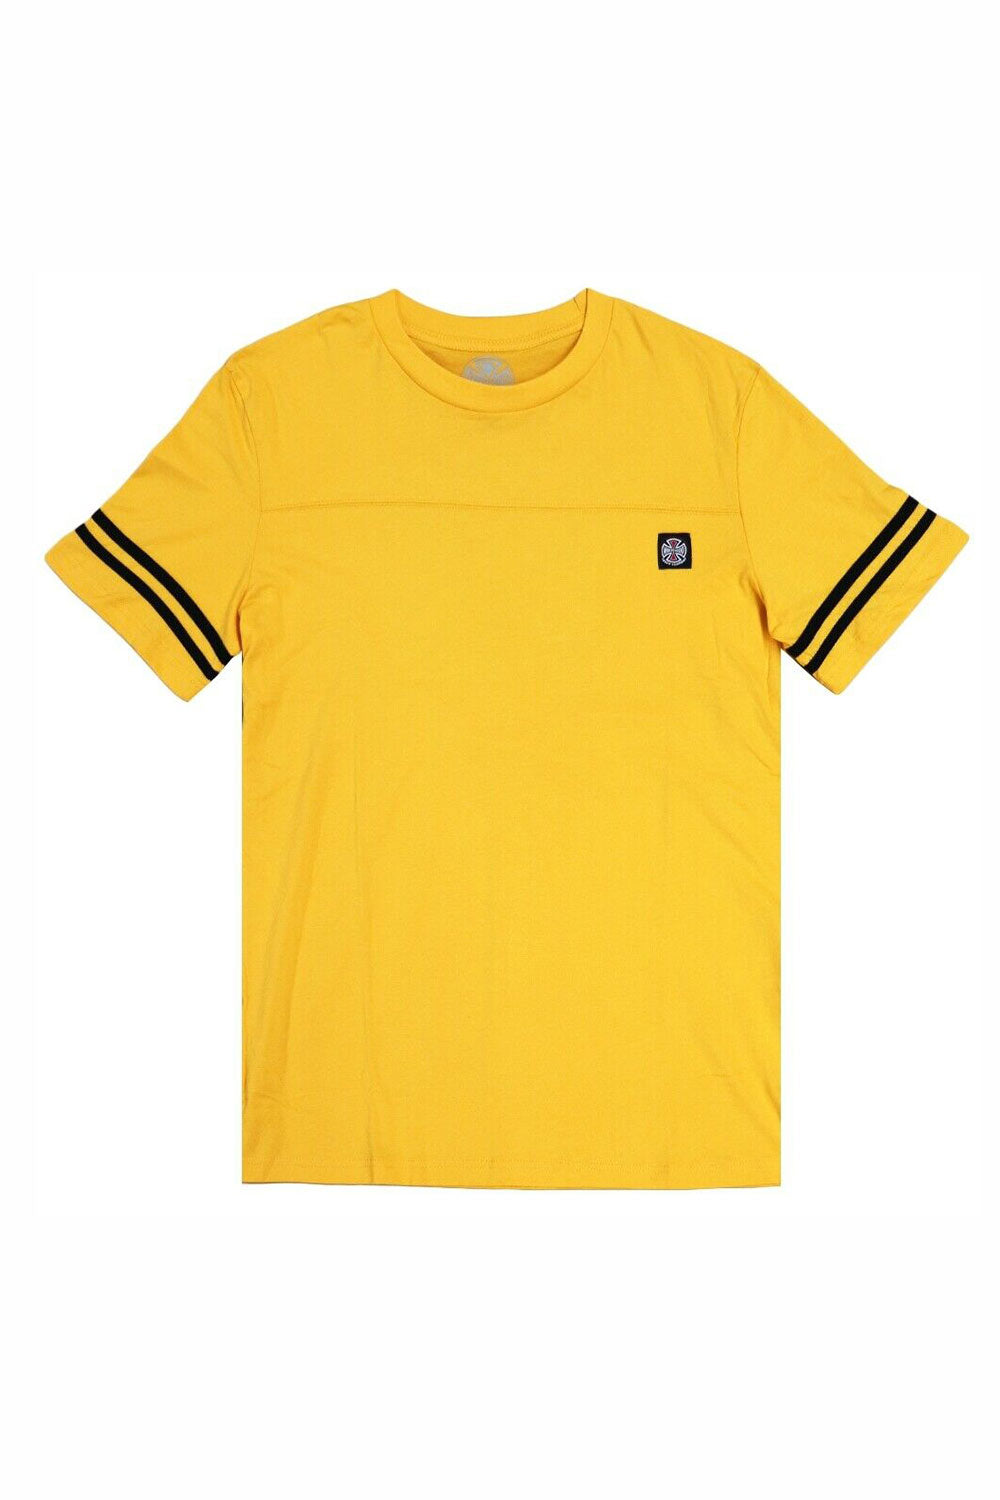 Independent Hustle Tee - Yellow